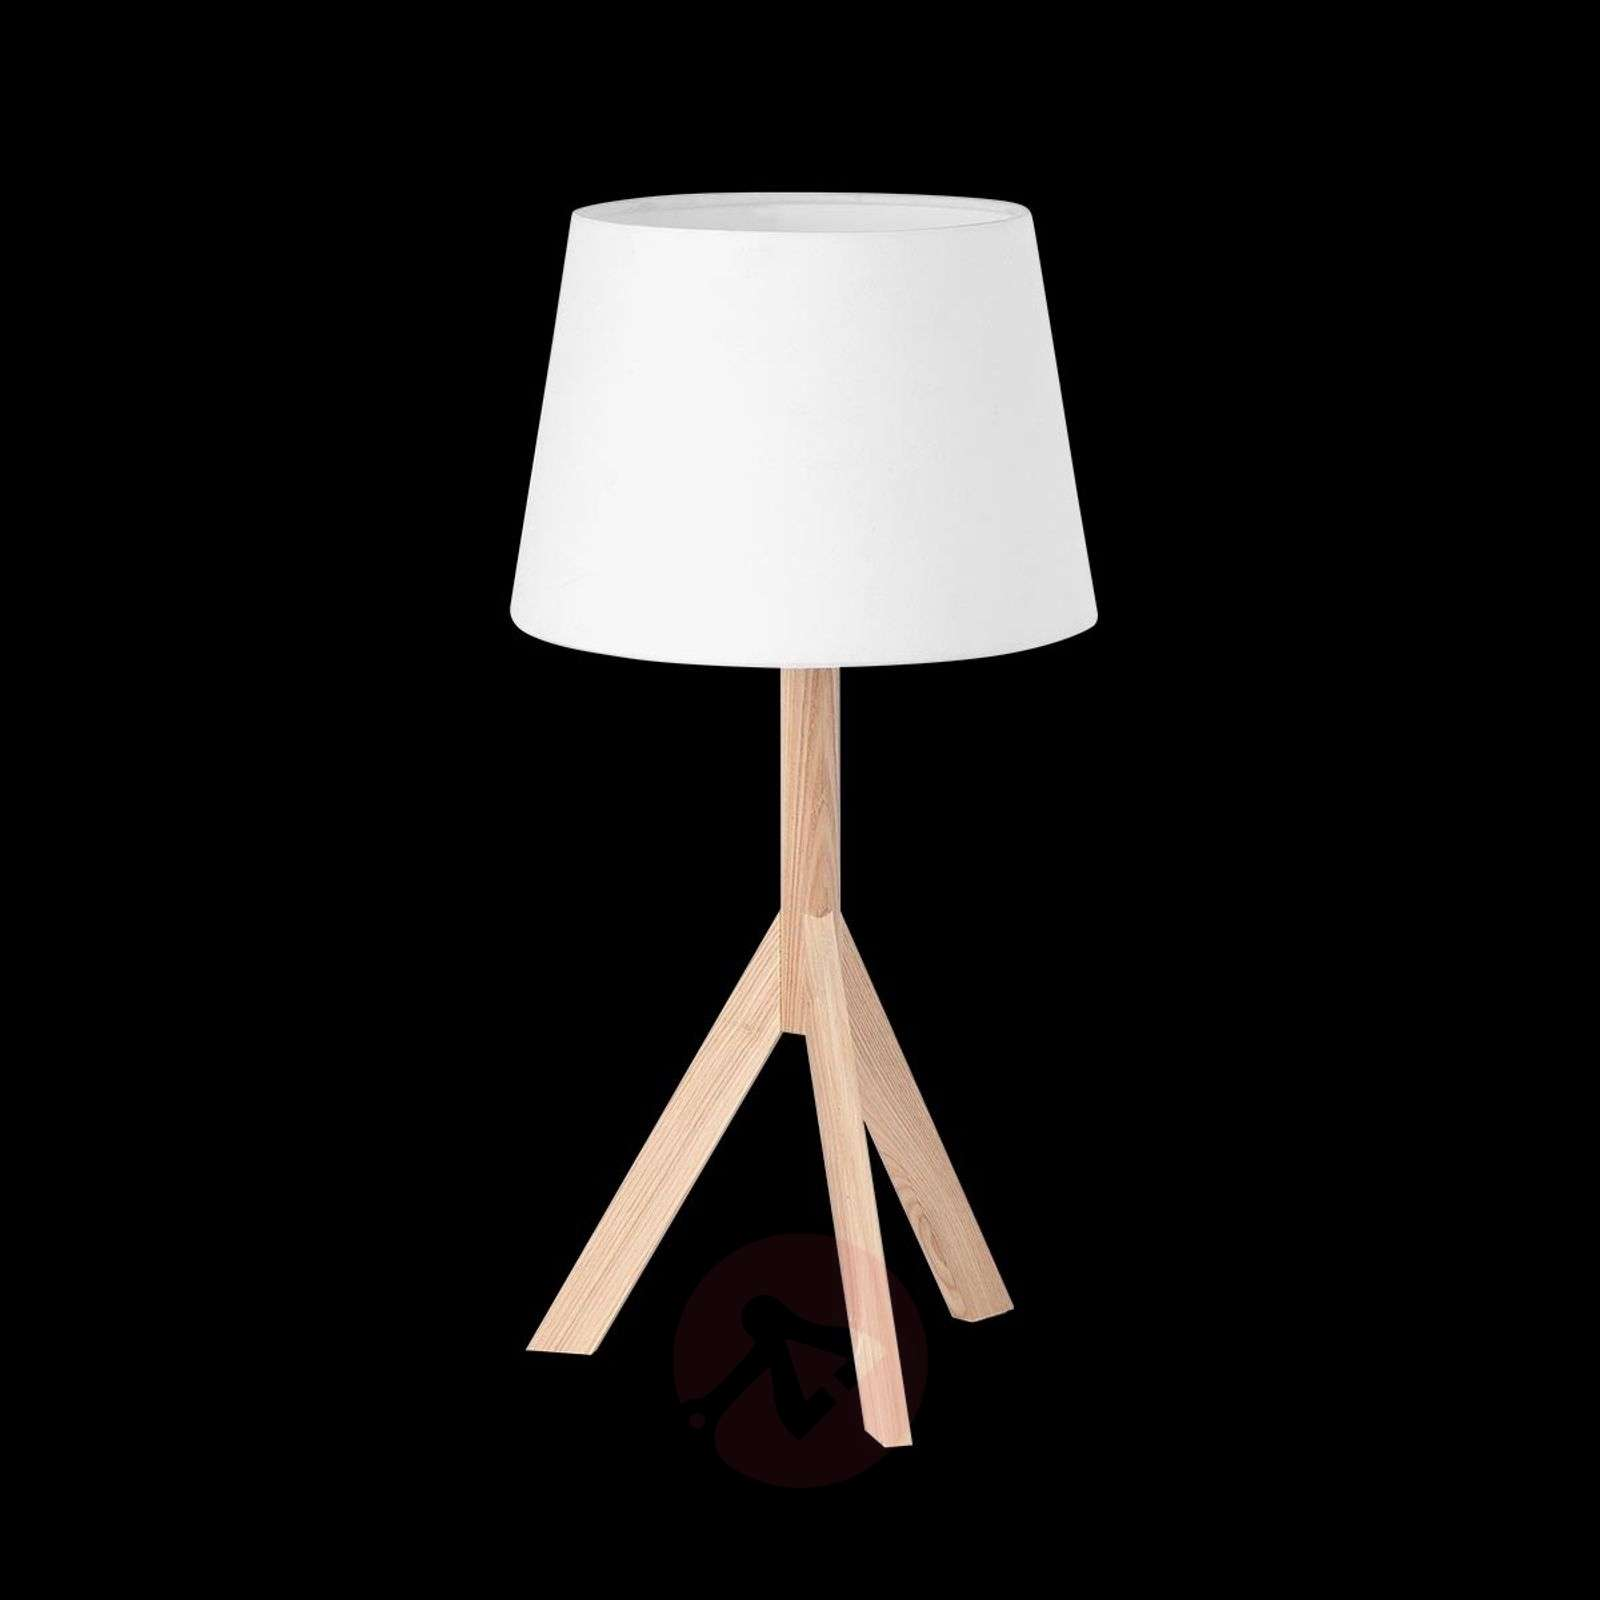 Hat Three-Legged Table Lamp-3507122-01